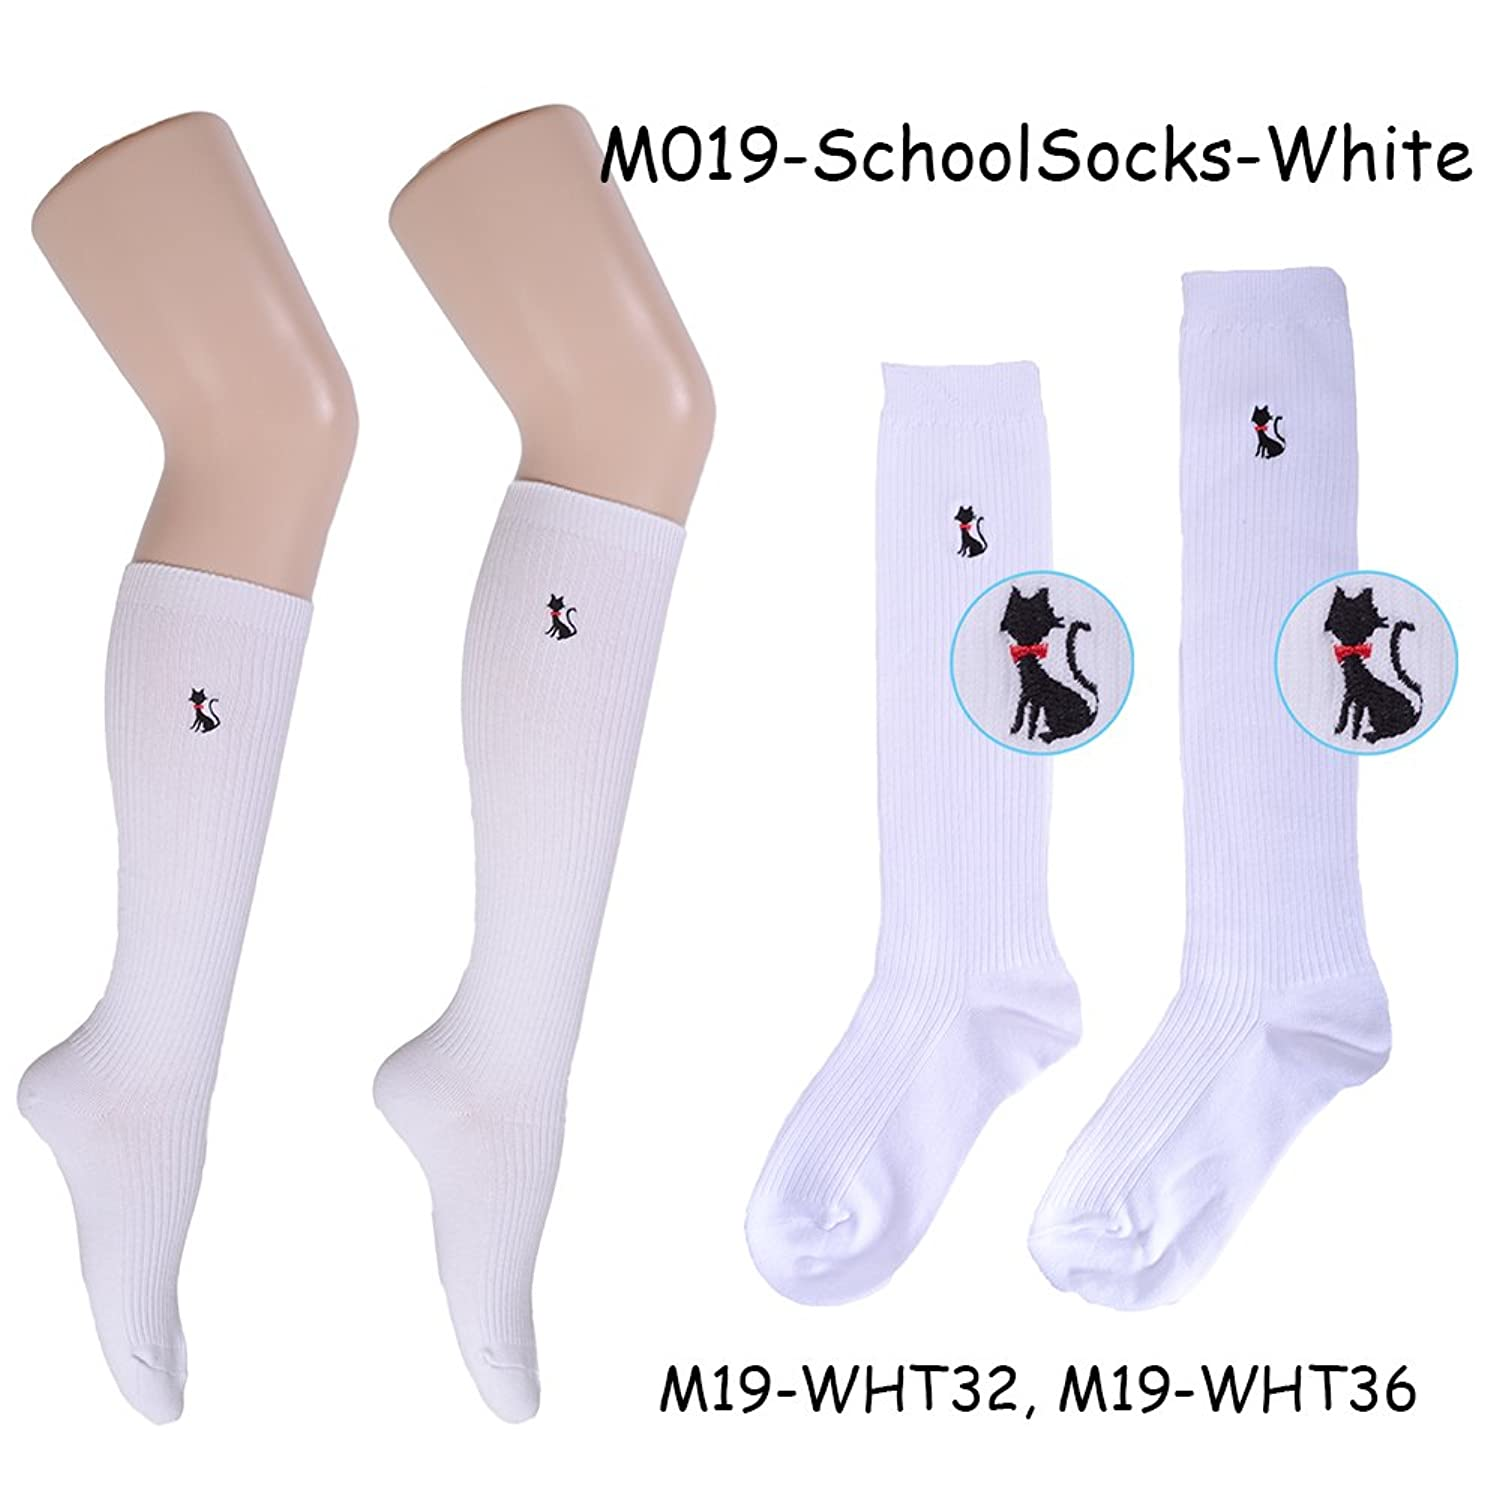 Lolita Charm Japanese School Socks-White